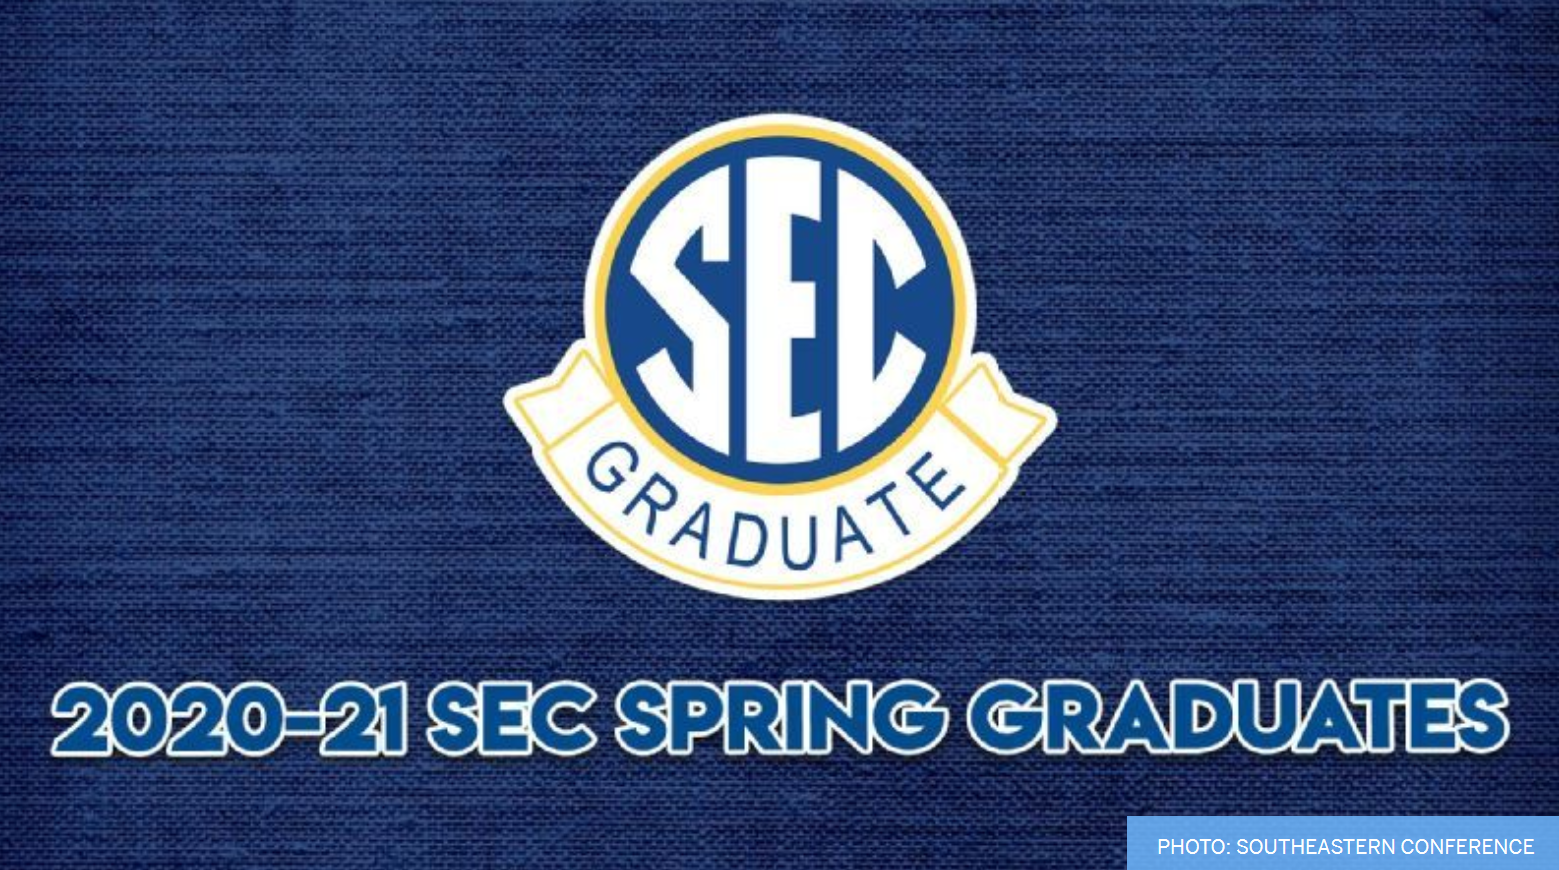 More Than 1,500 SEC Student-Athletes Earn Degrees